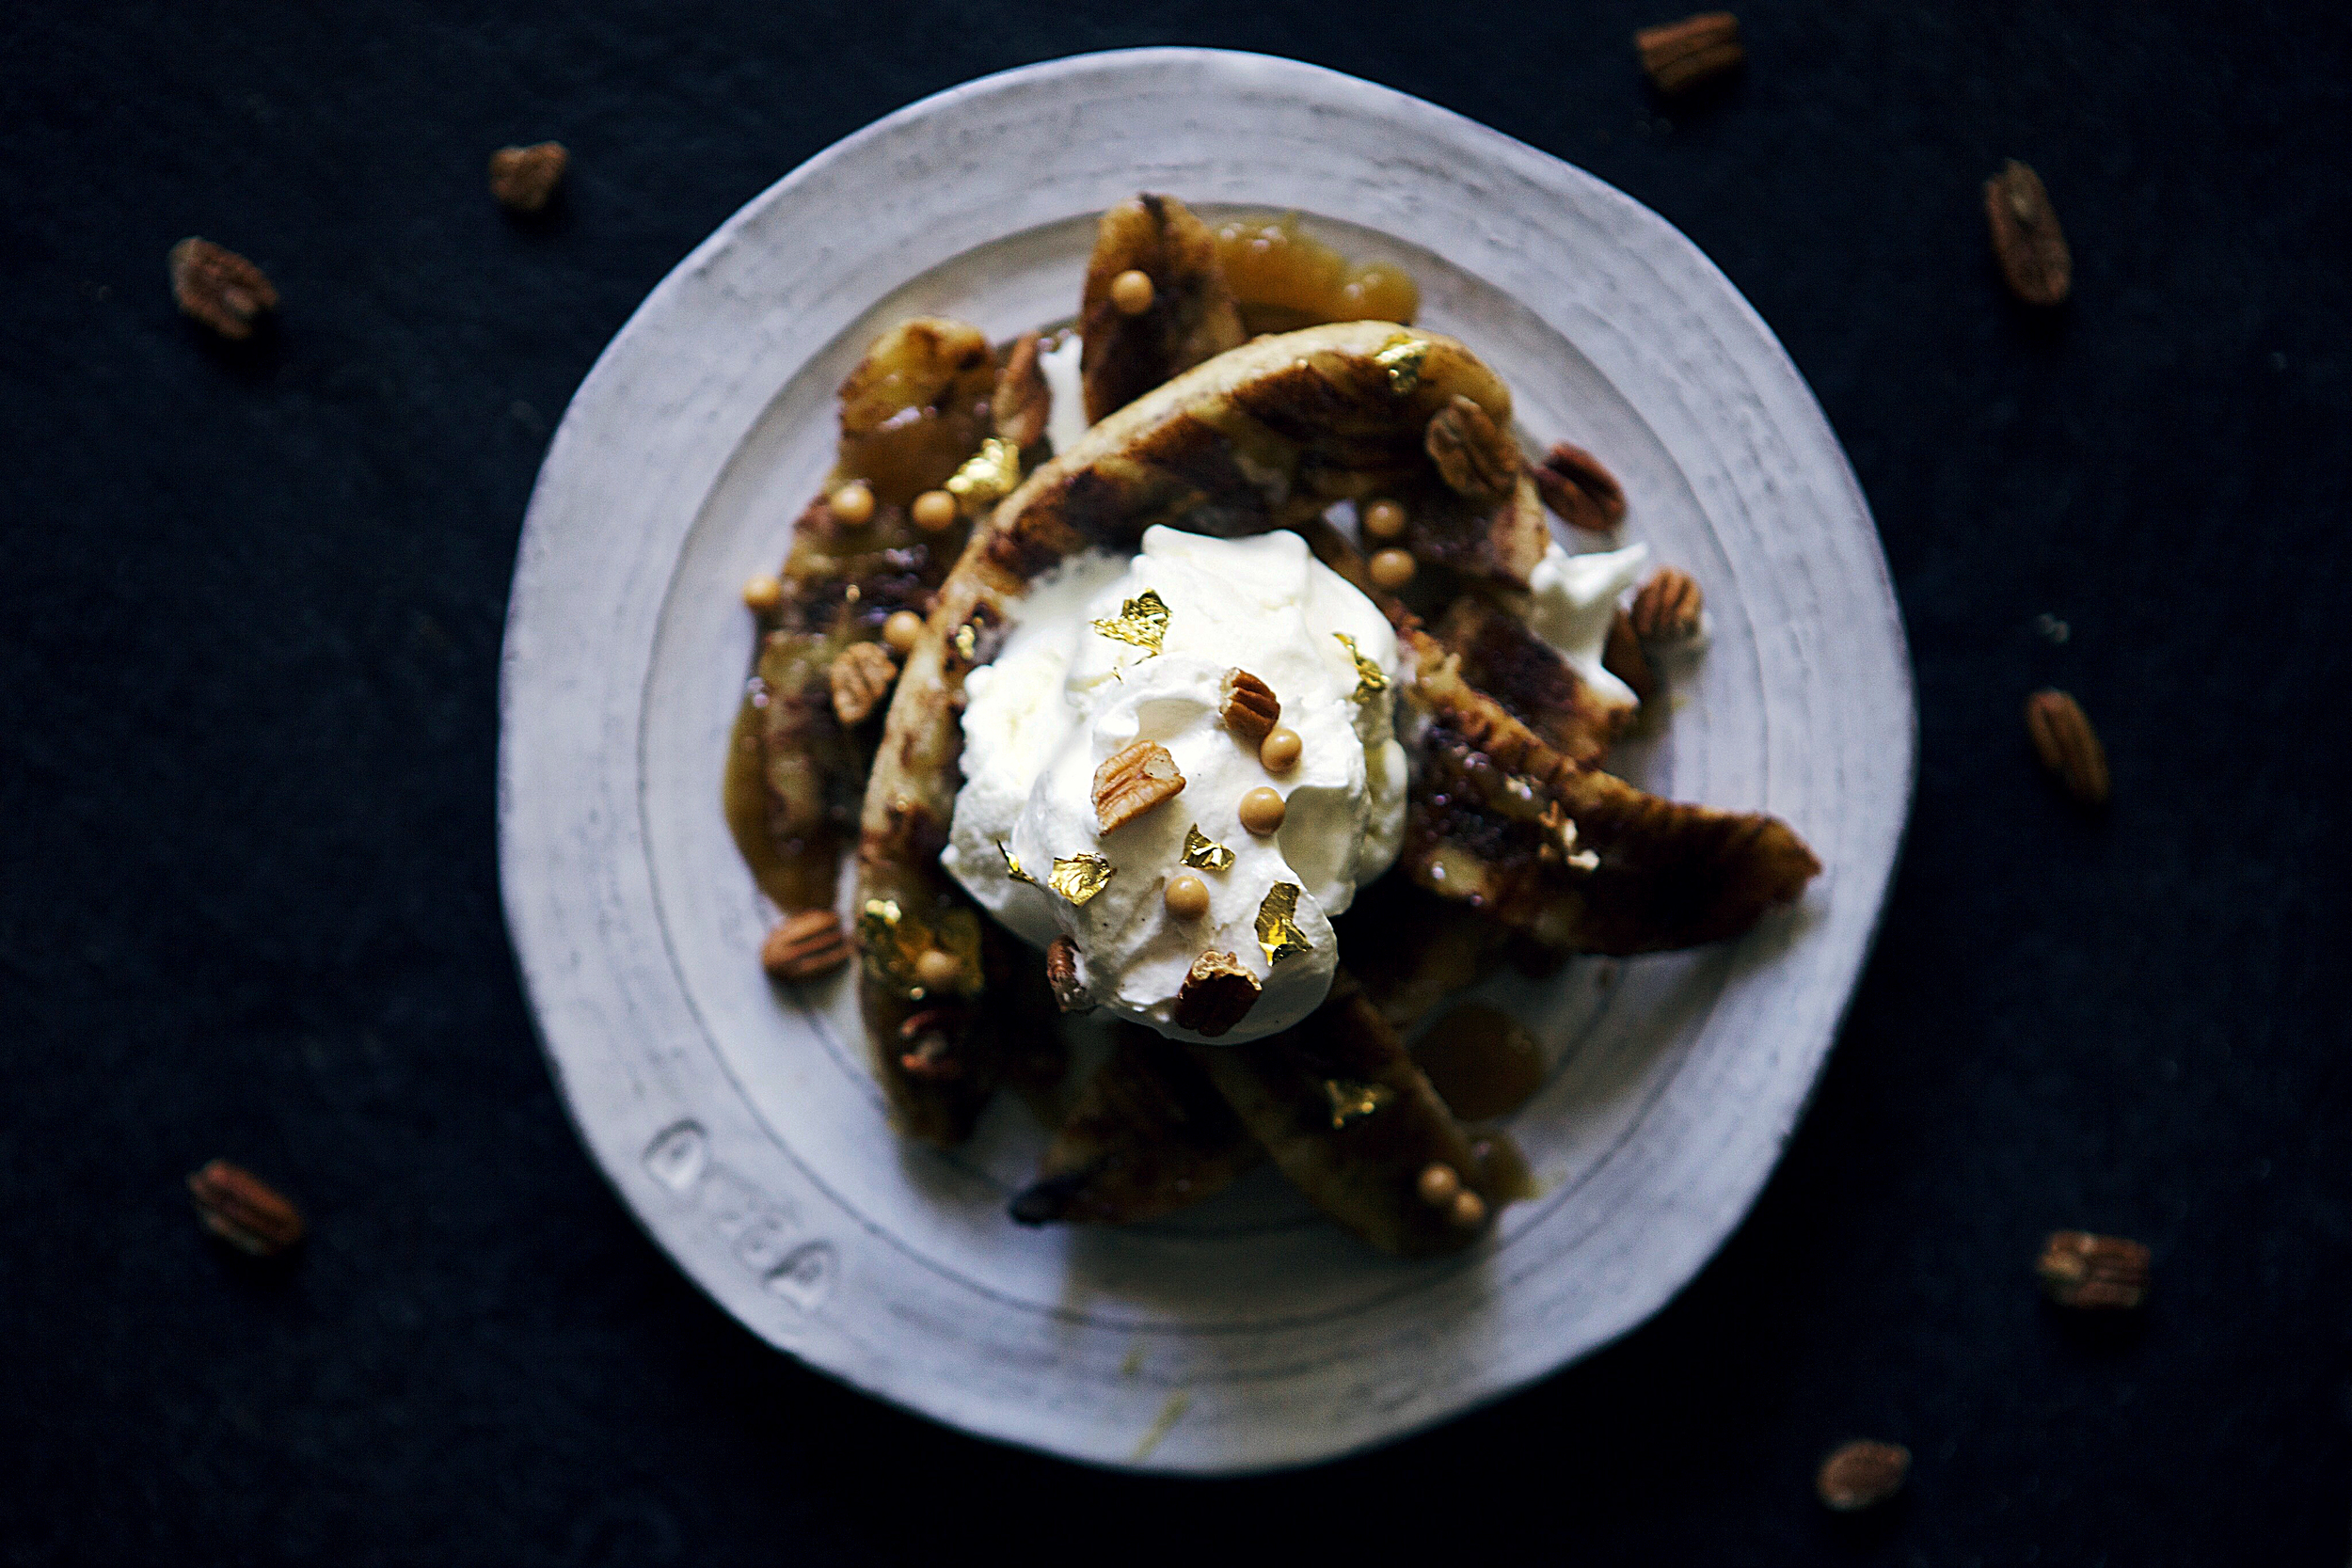 grilled bananas foster sundaes